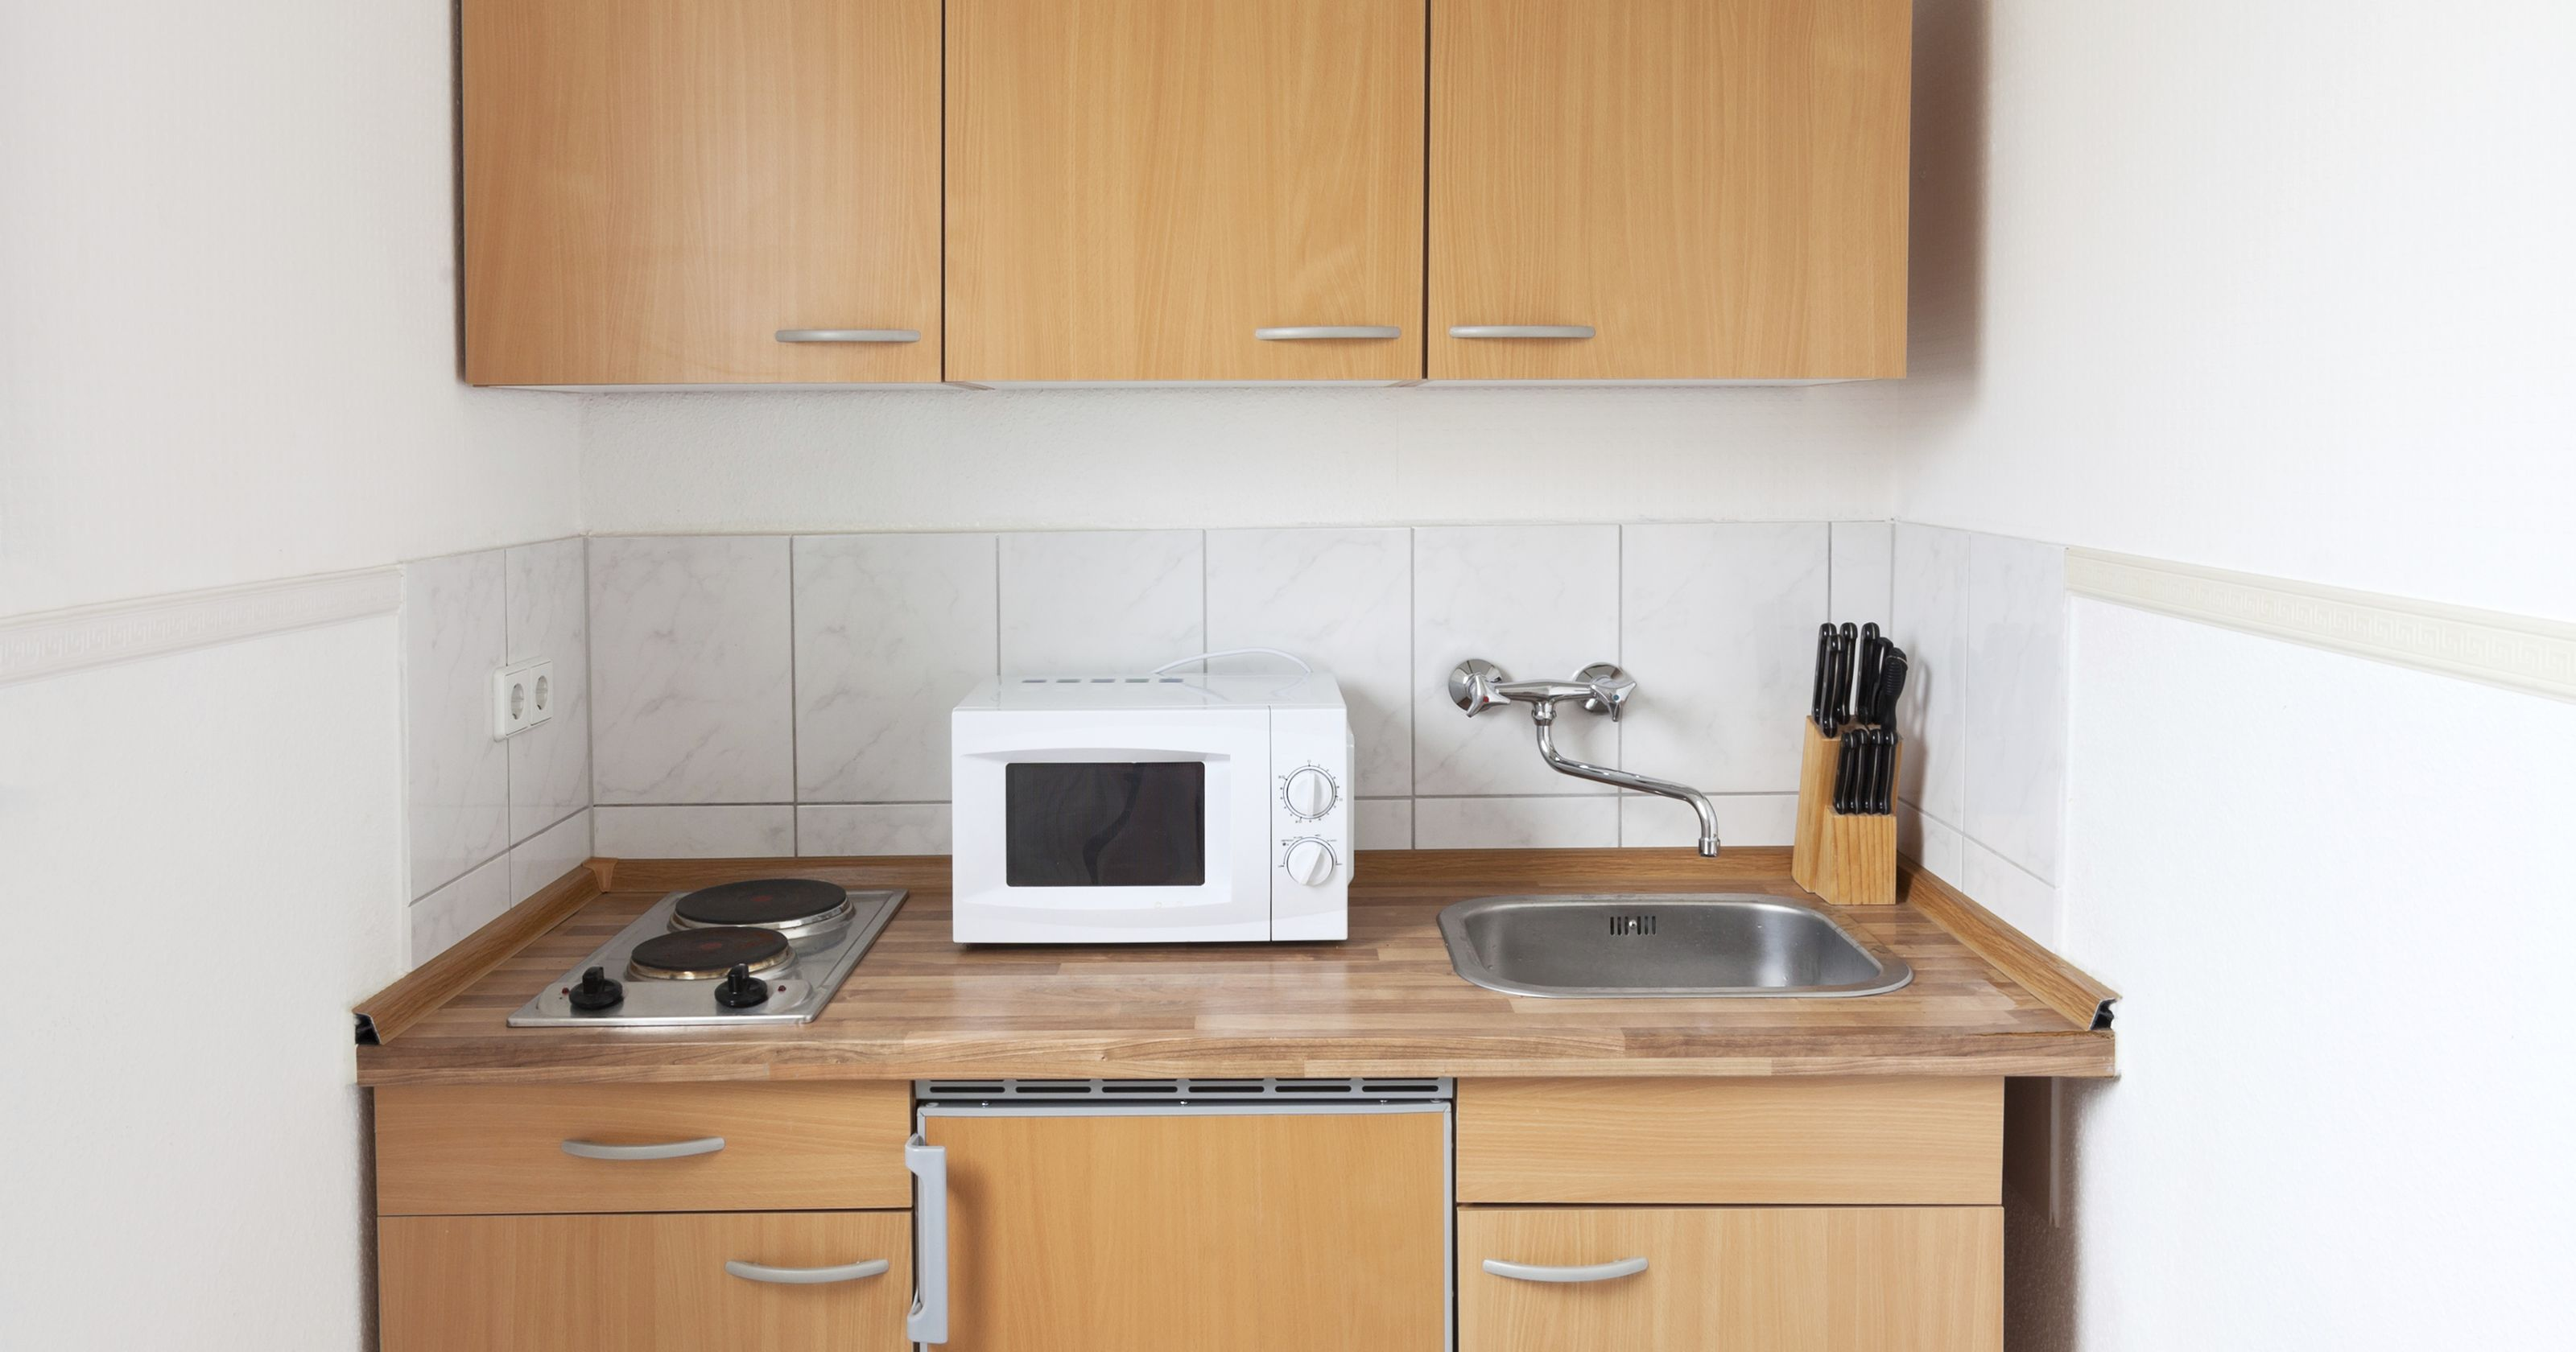 affordable appliances for your first apartment